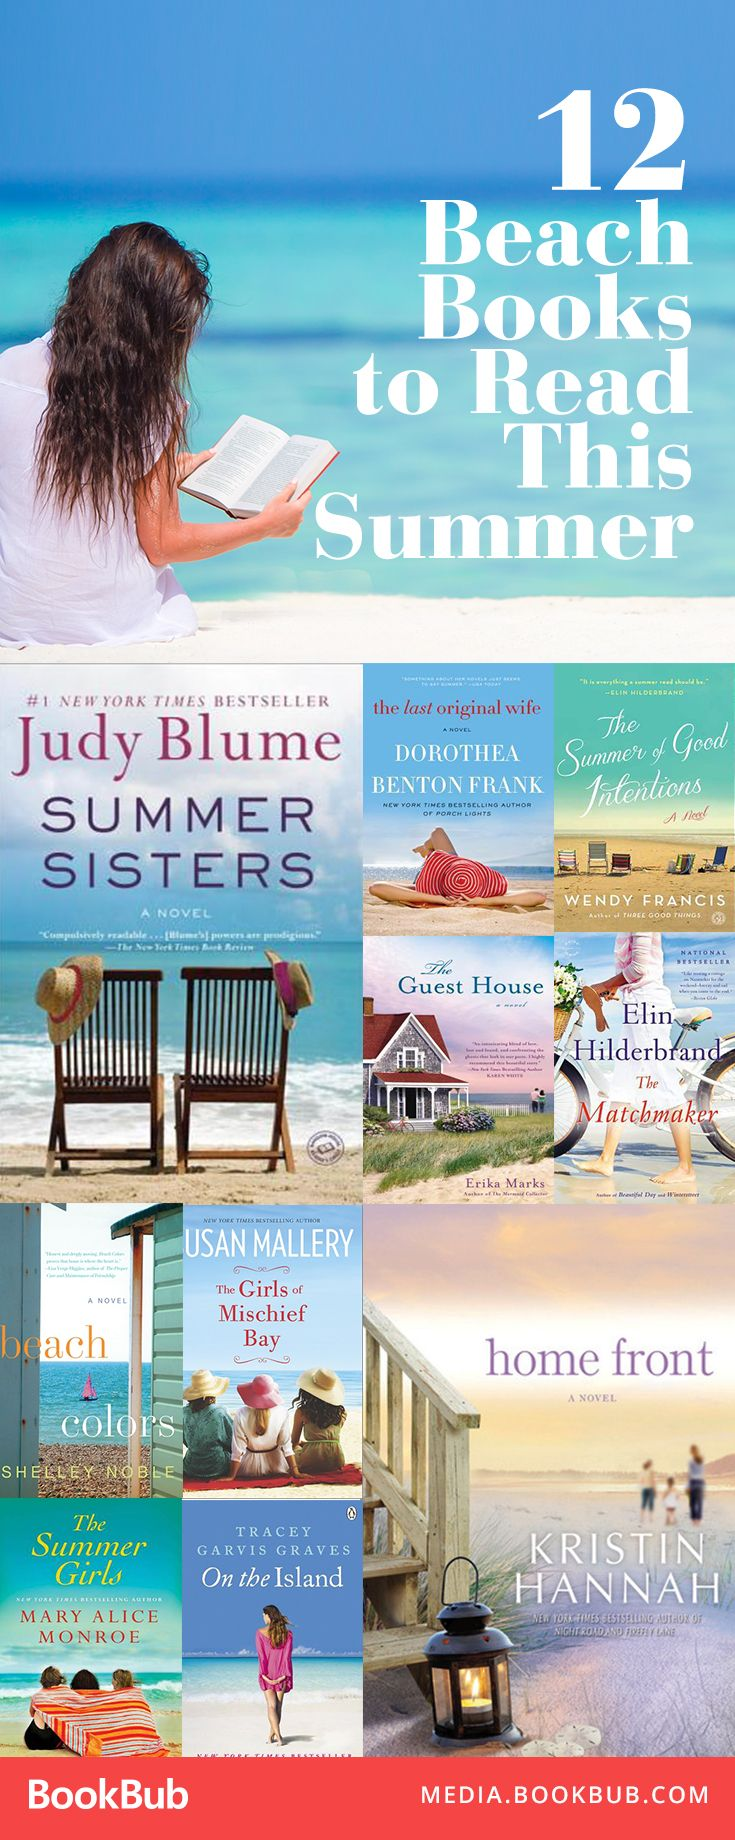 12 beach read books for your summer reading list. These are great book choices for women, too!